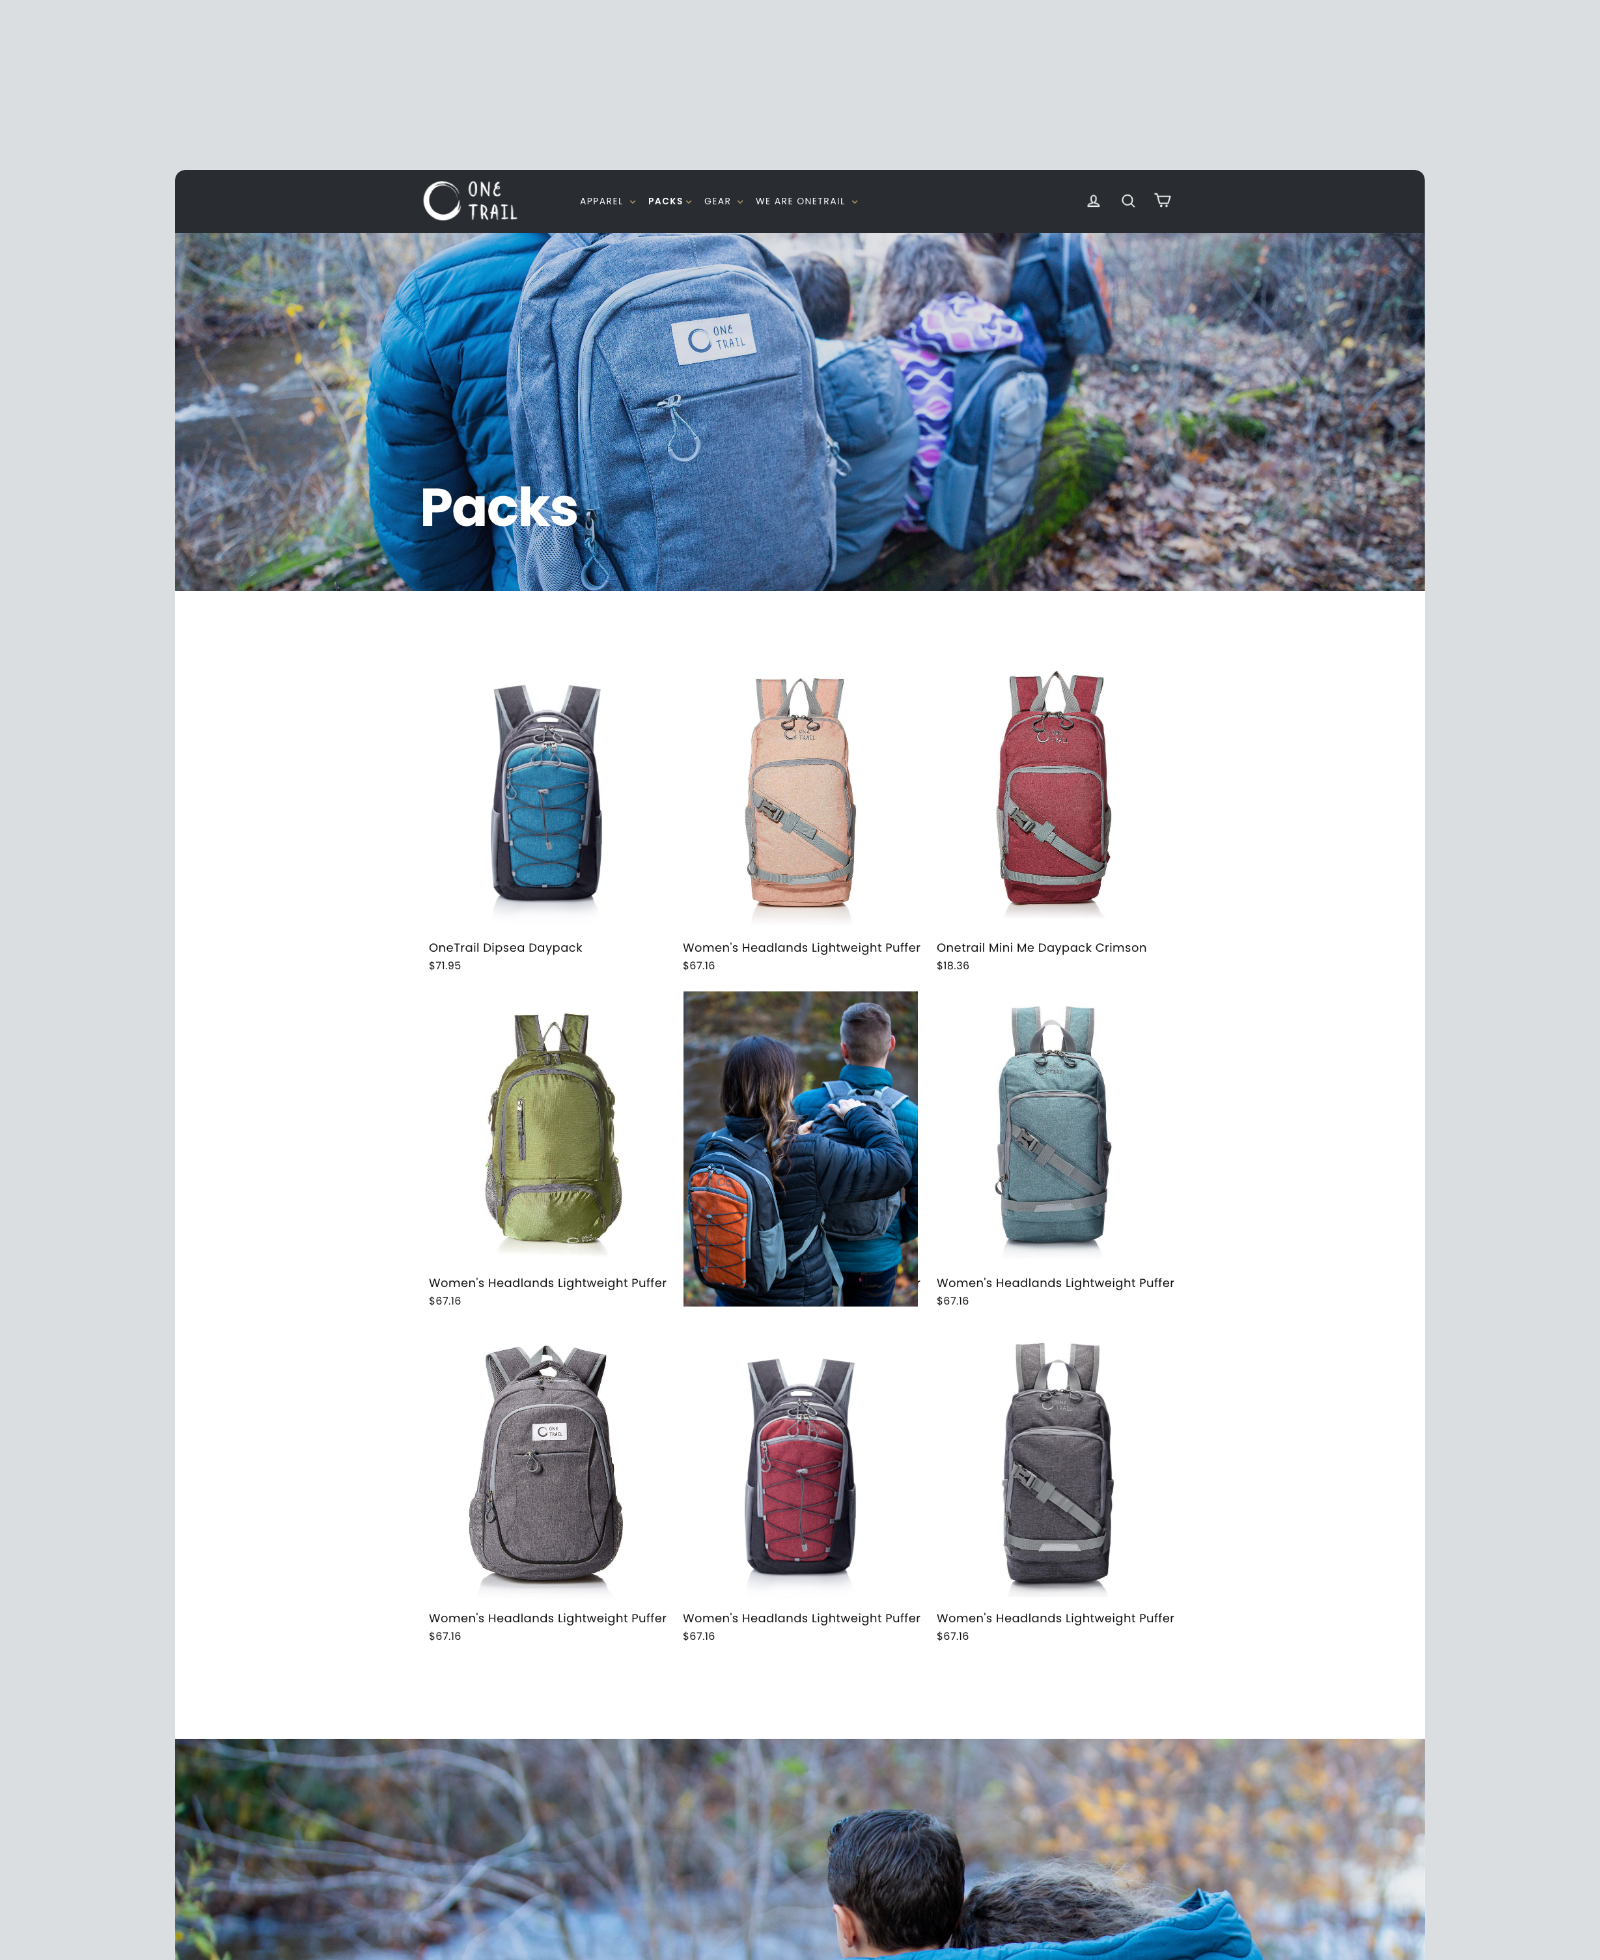 One Trail Gear Product Collections Page